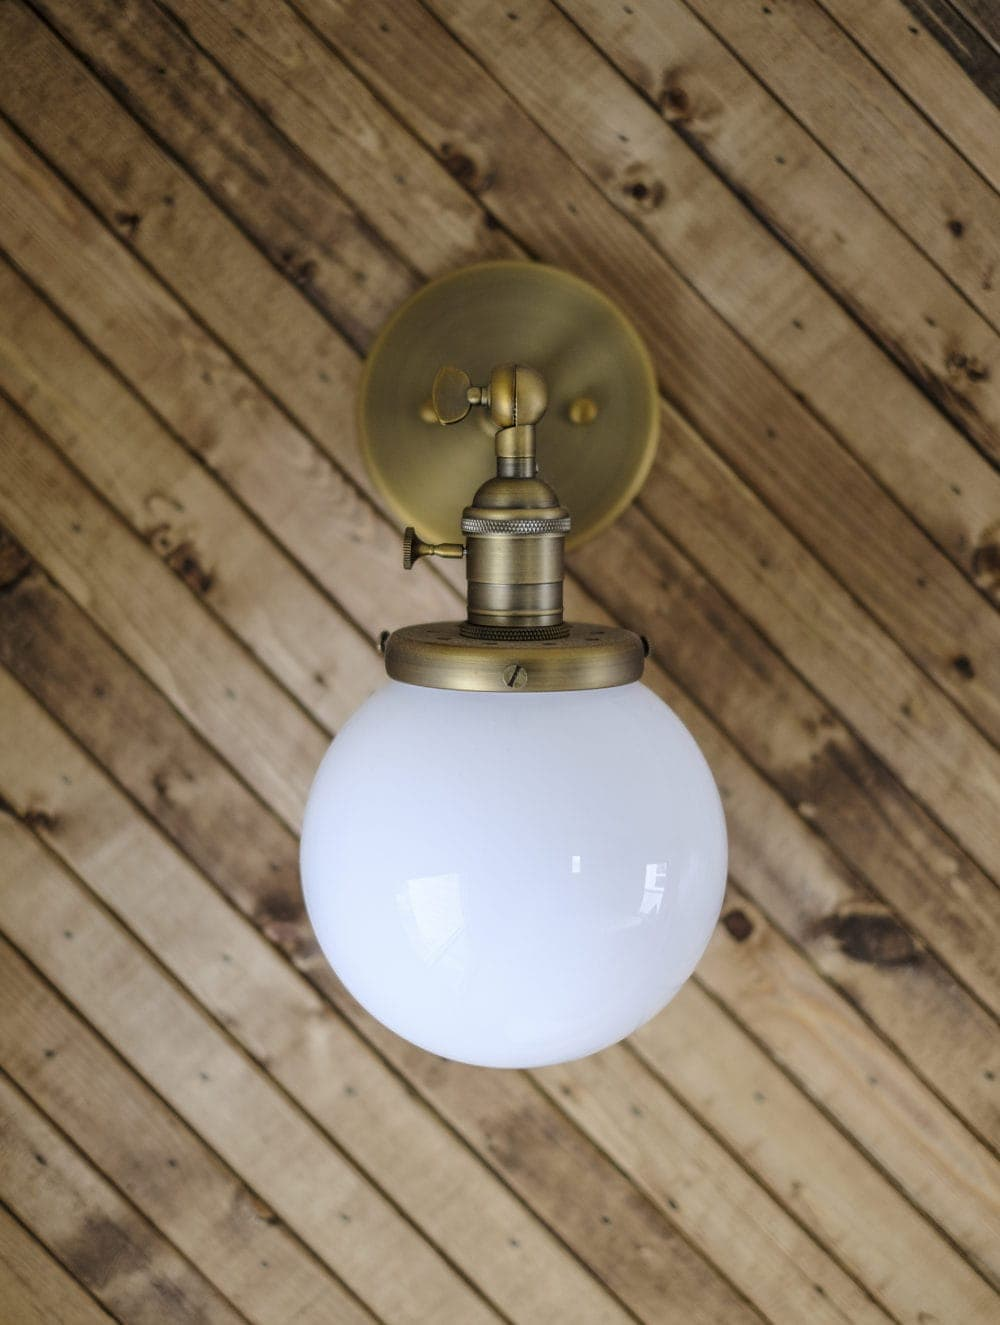 Brass wall sconce with globe light shade